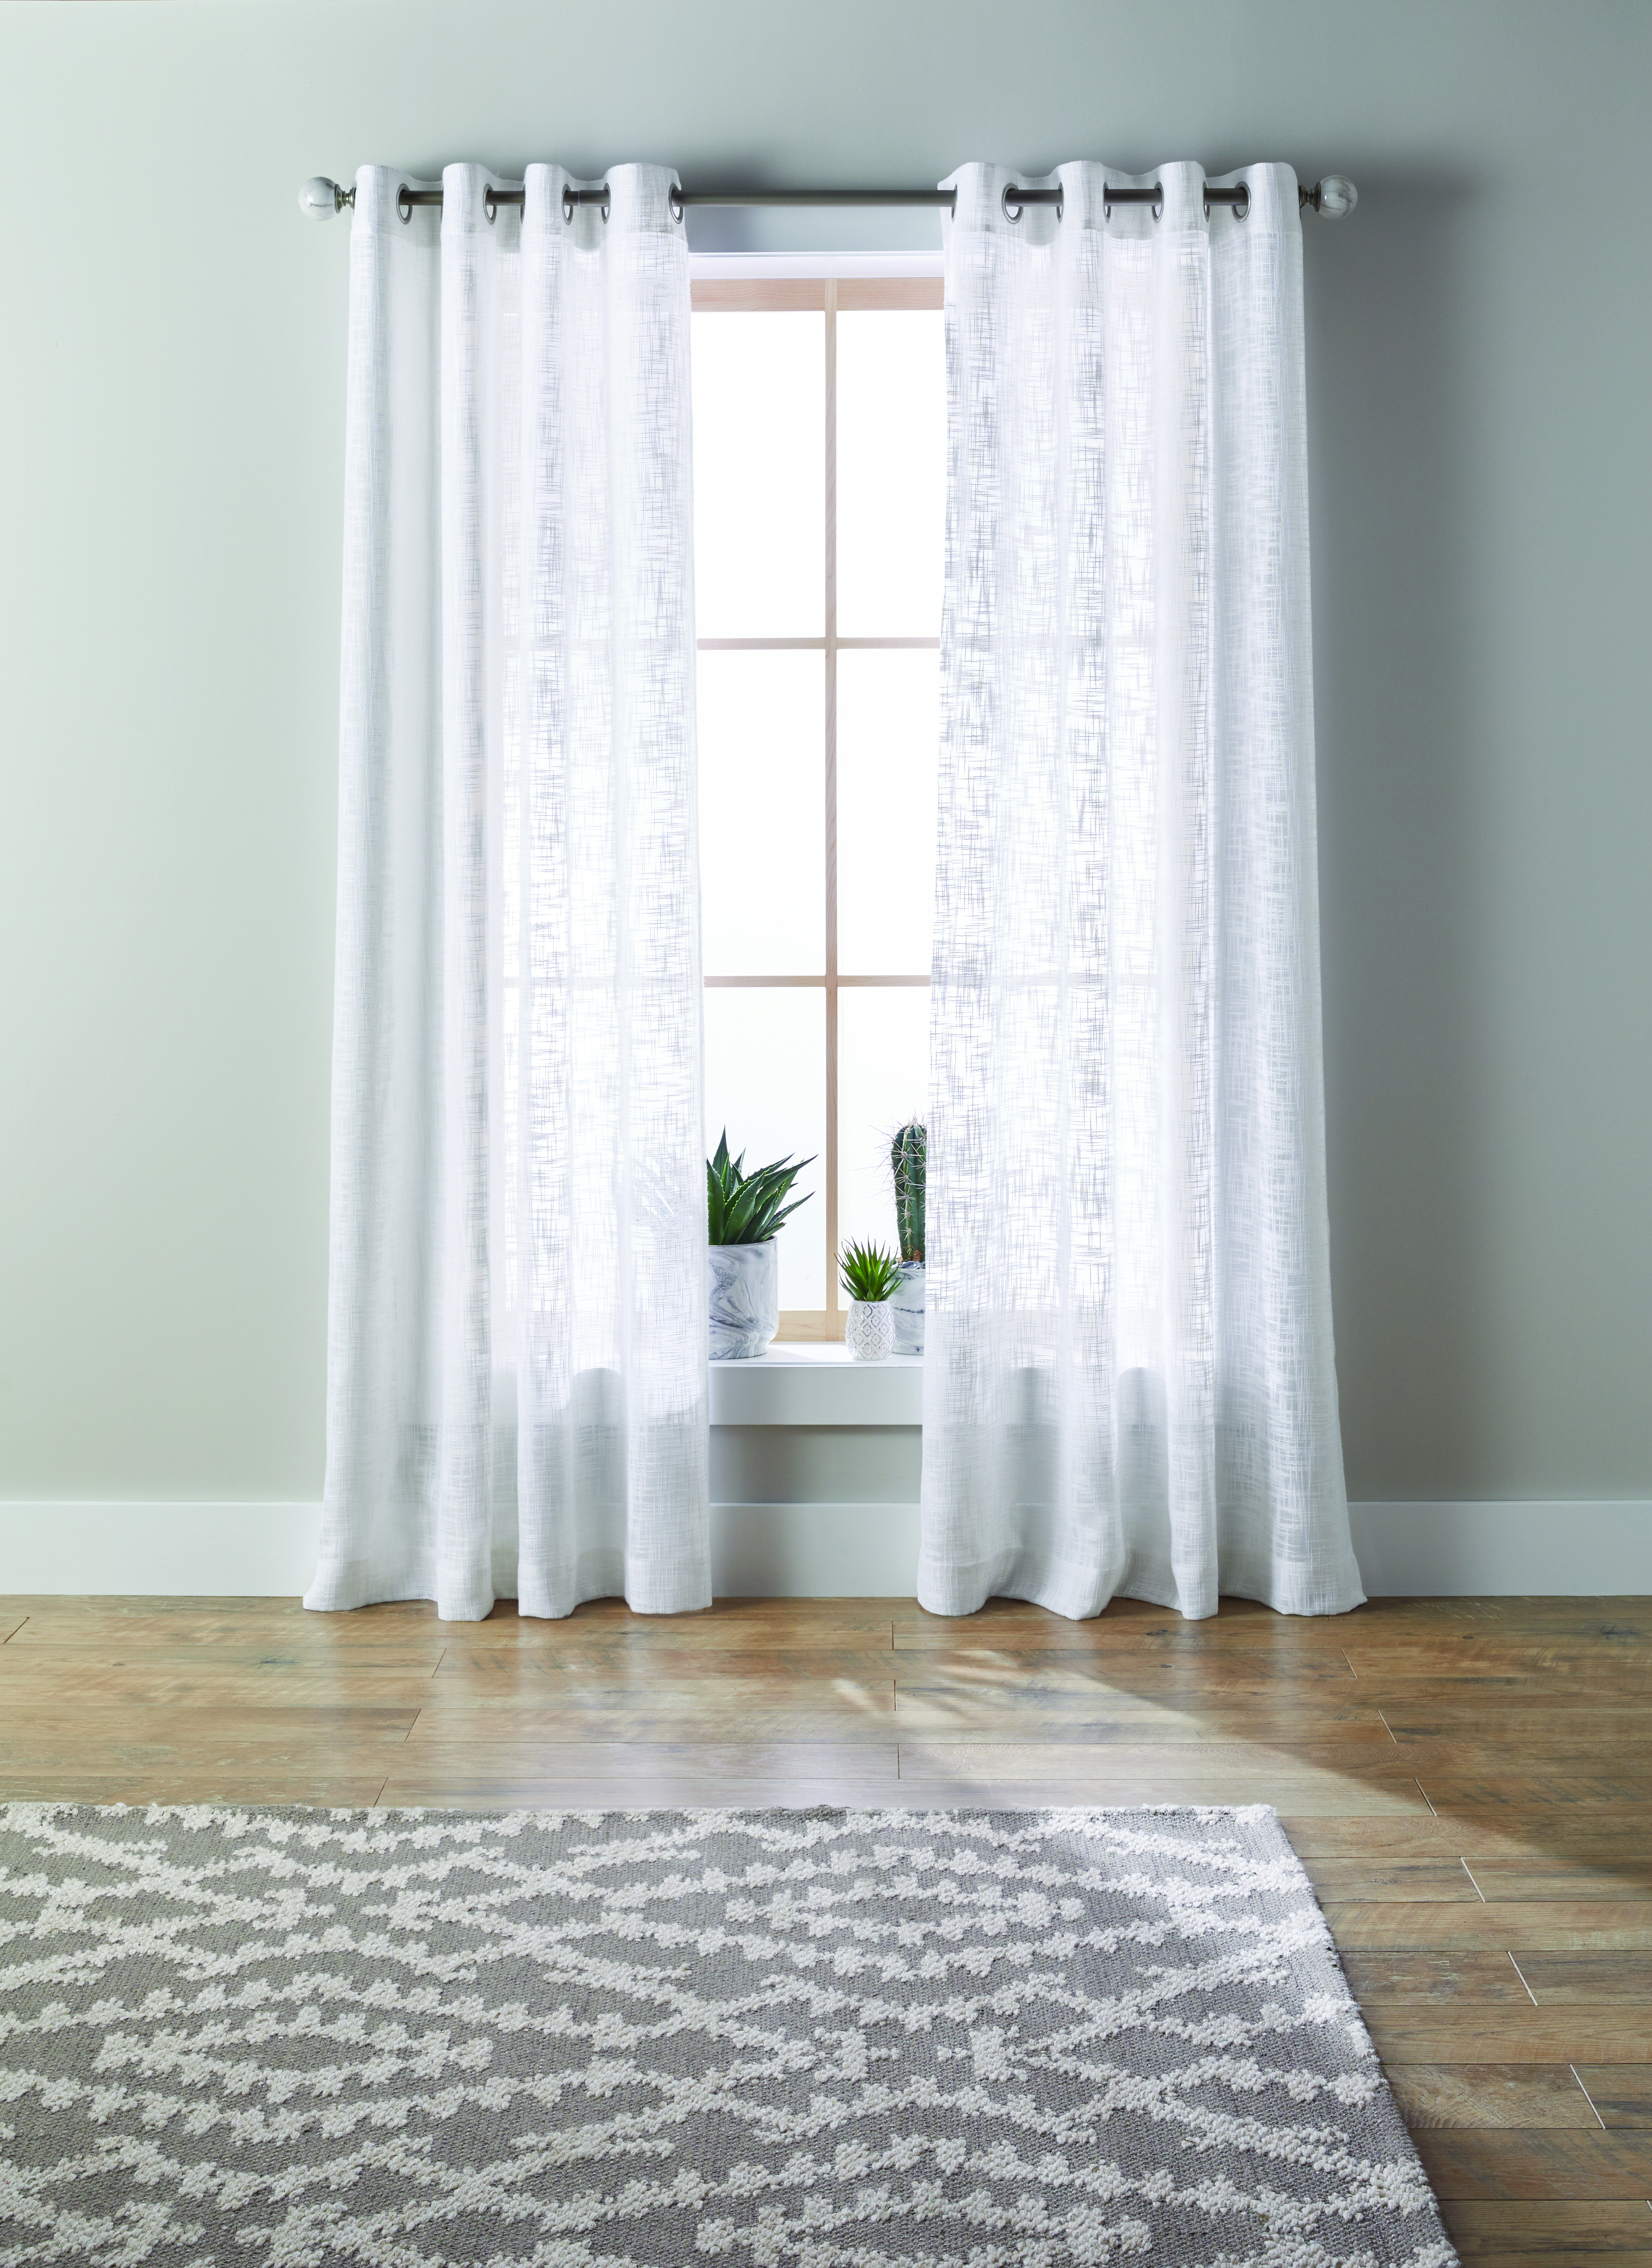 Better Homes & Gardens Slub Sheer Single Window Curtain With Regard To Archaeo Slub Textured Linen Blend Grommet Top Curtains (Image 16 of 20)